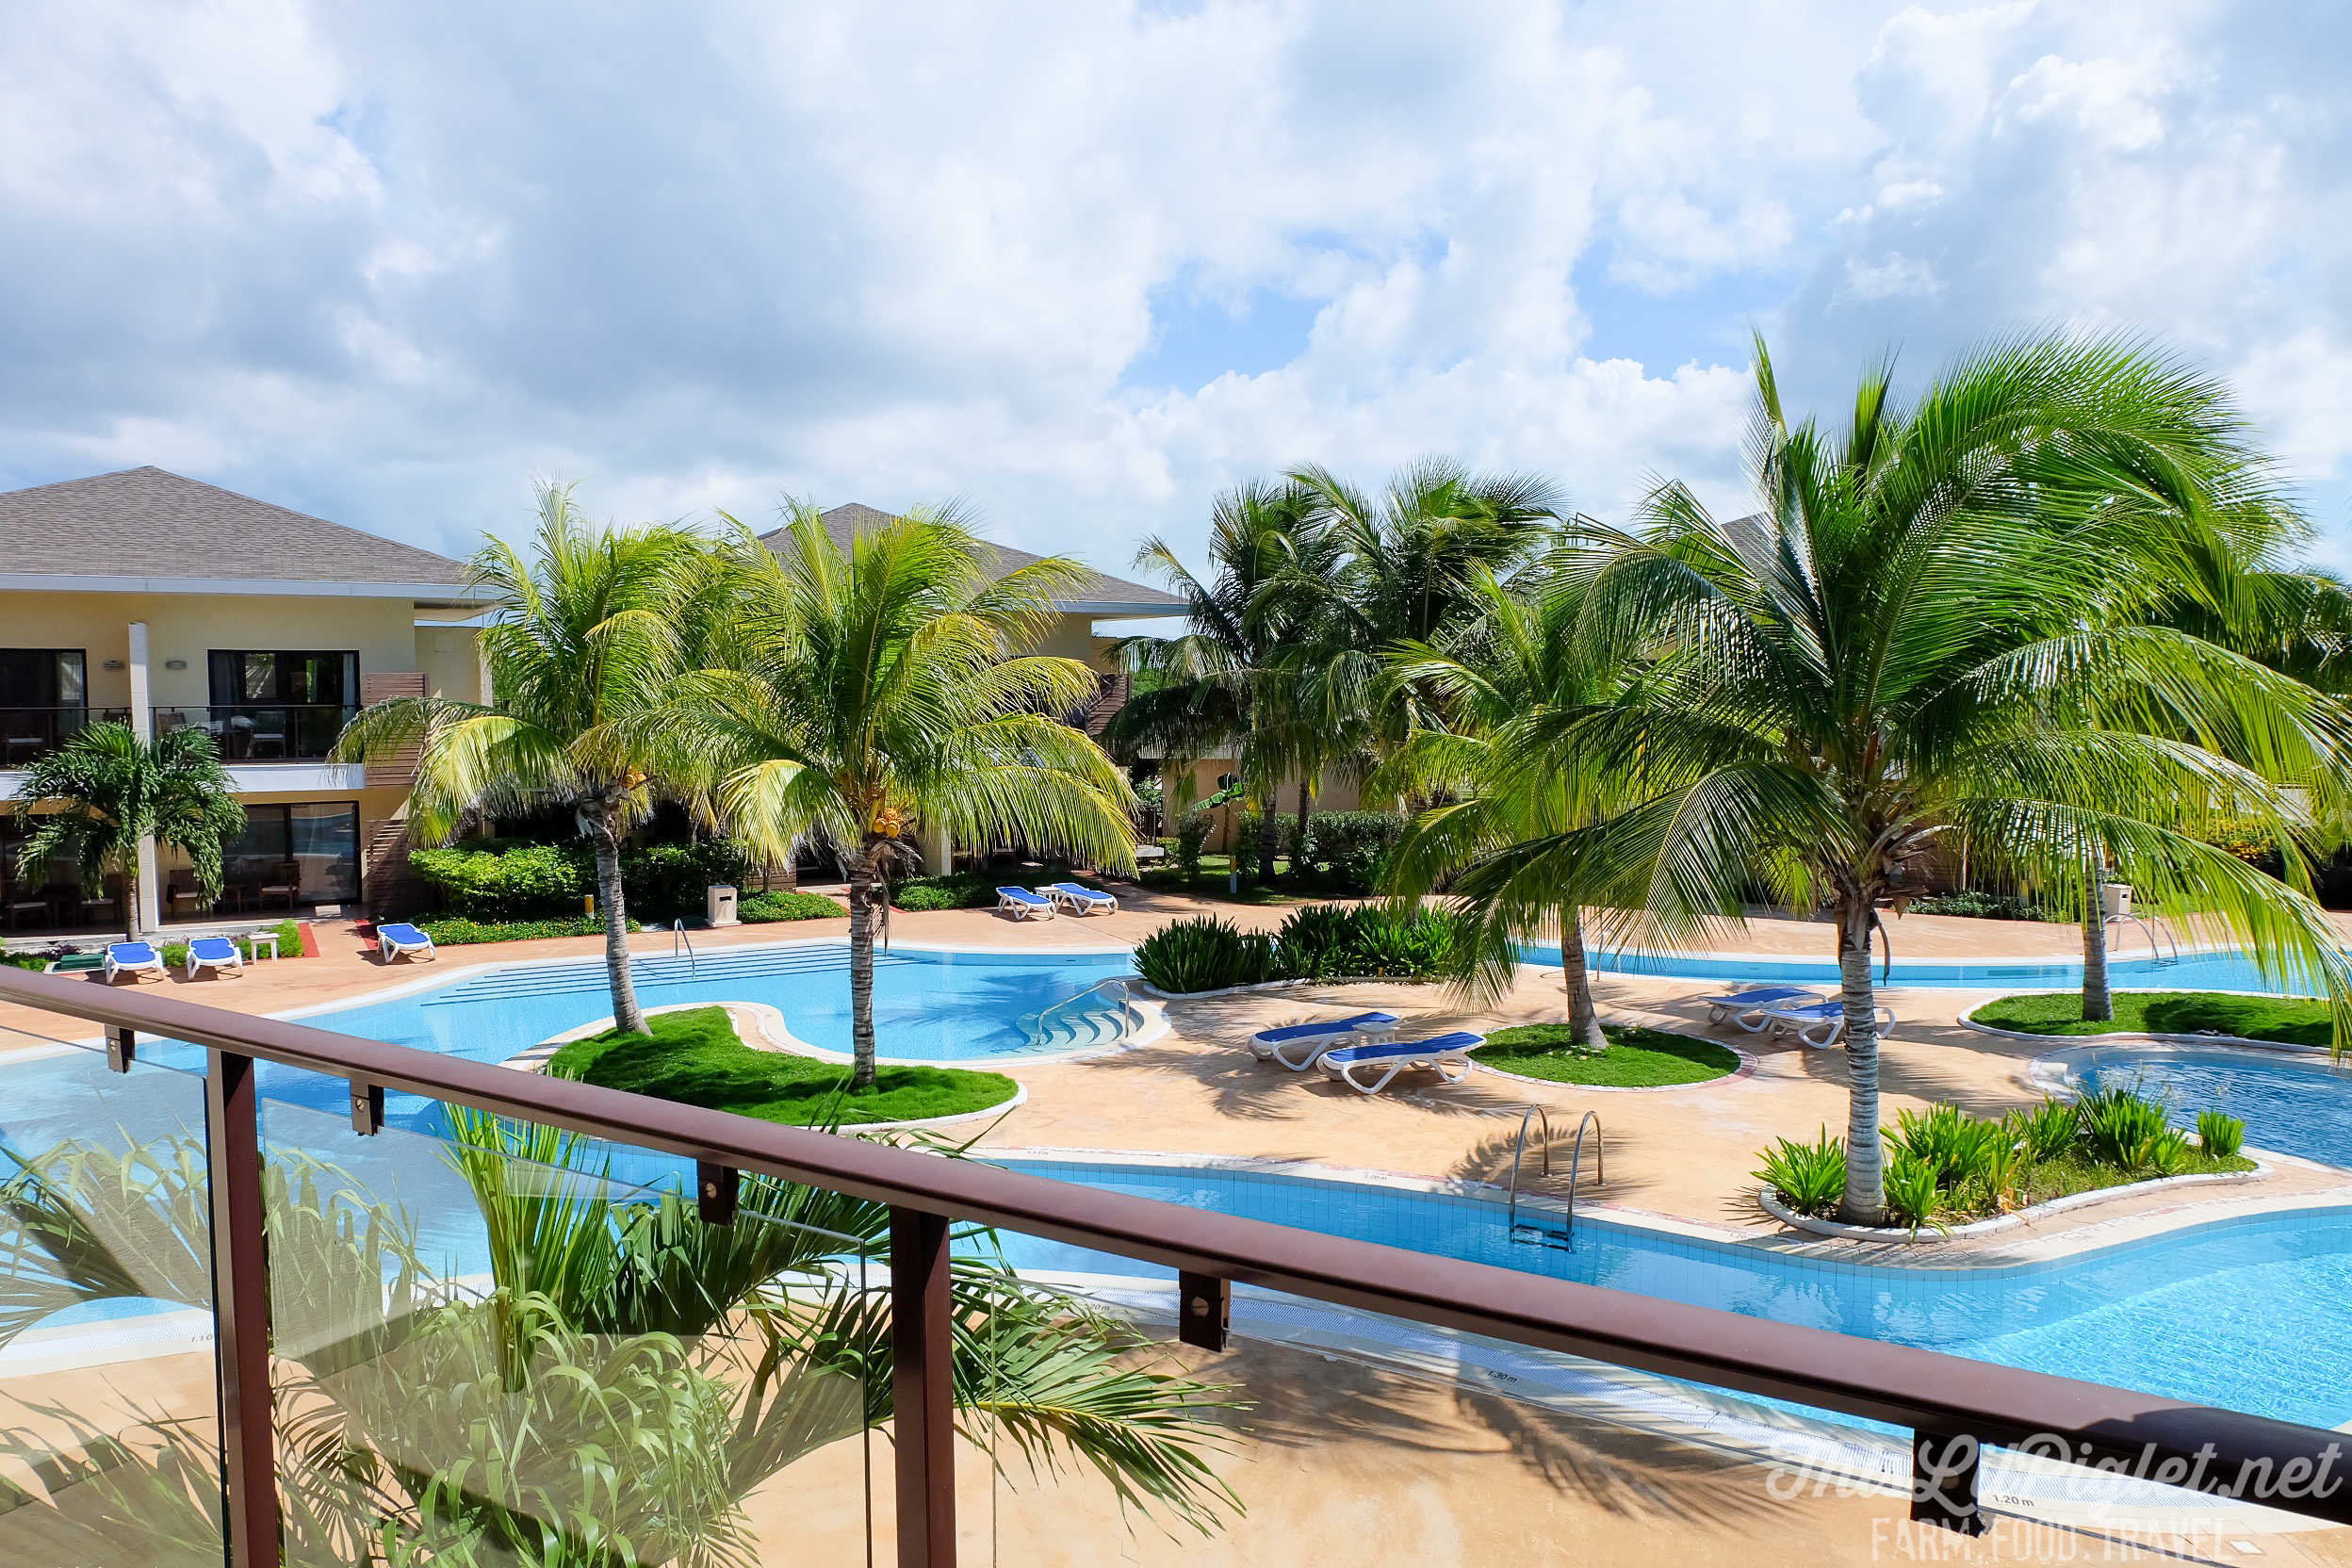 Cuba Couples Travel: Melia Buenavista Hotel Quiet Pool // thislilpiglet.net